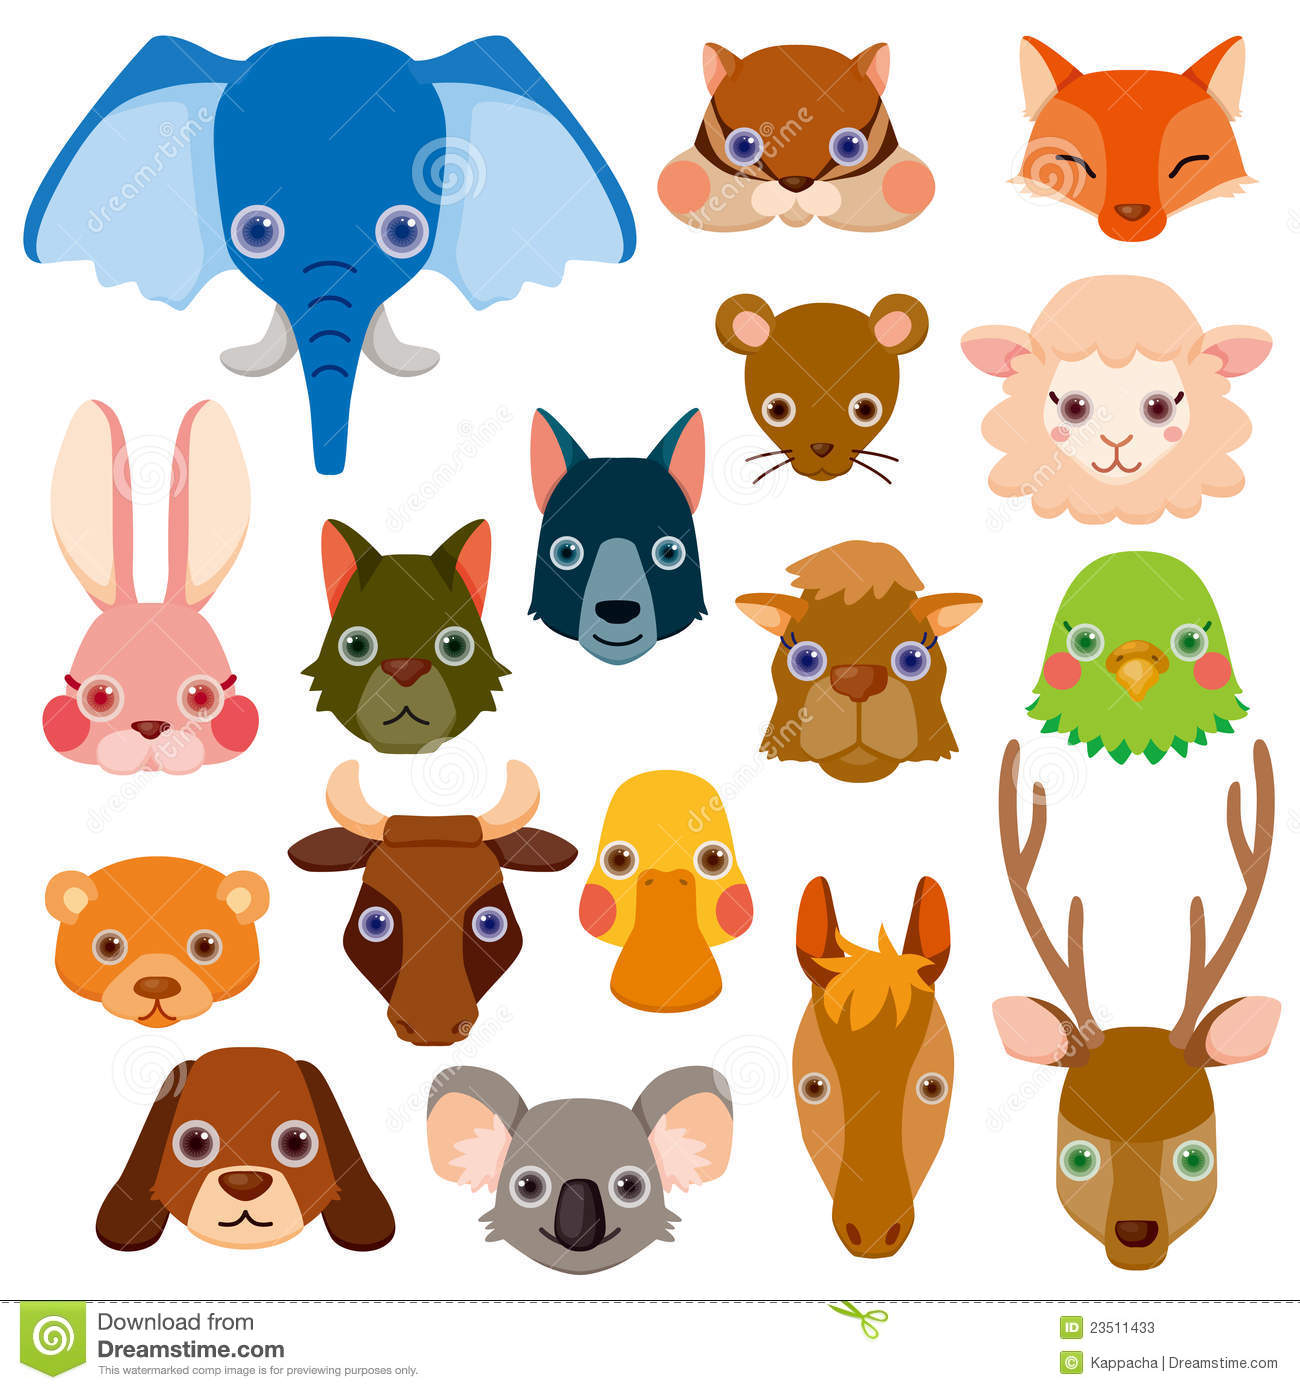 Vector animal head icons